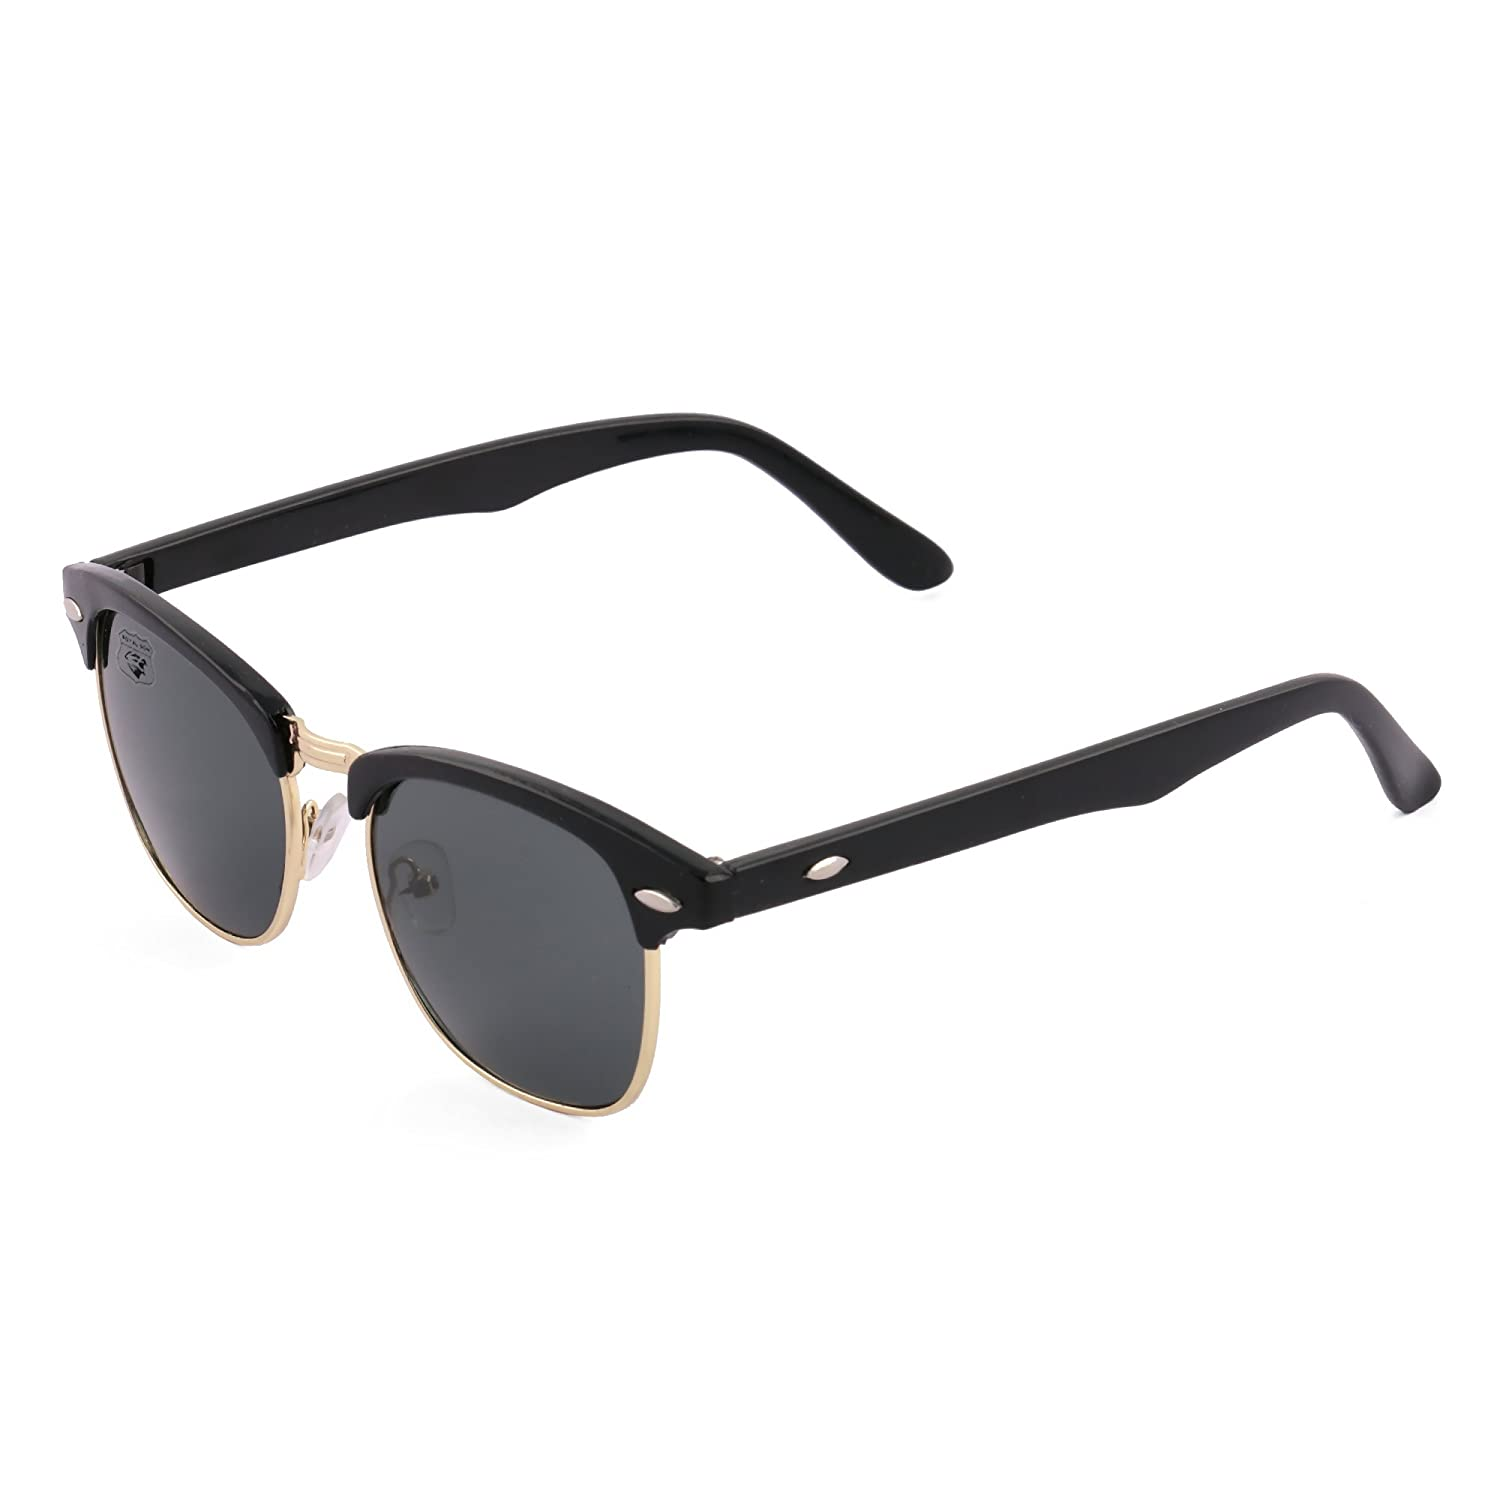 Royal Son Wayfarer Sunglasses (Black) (What1555)